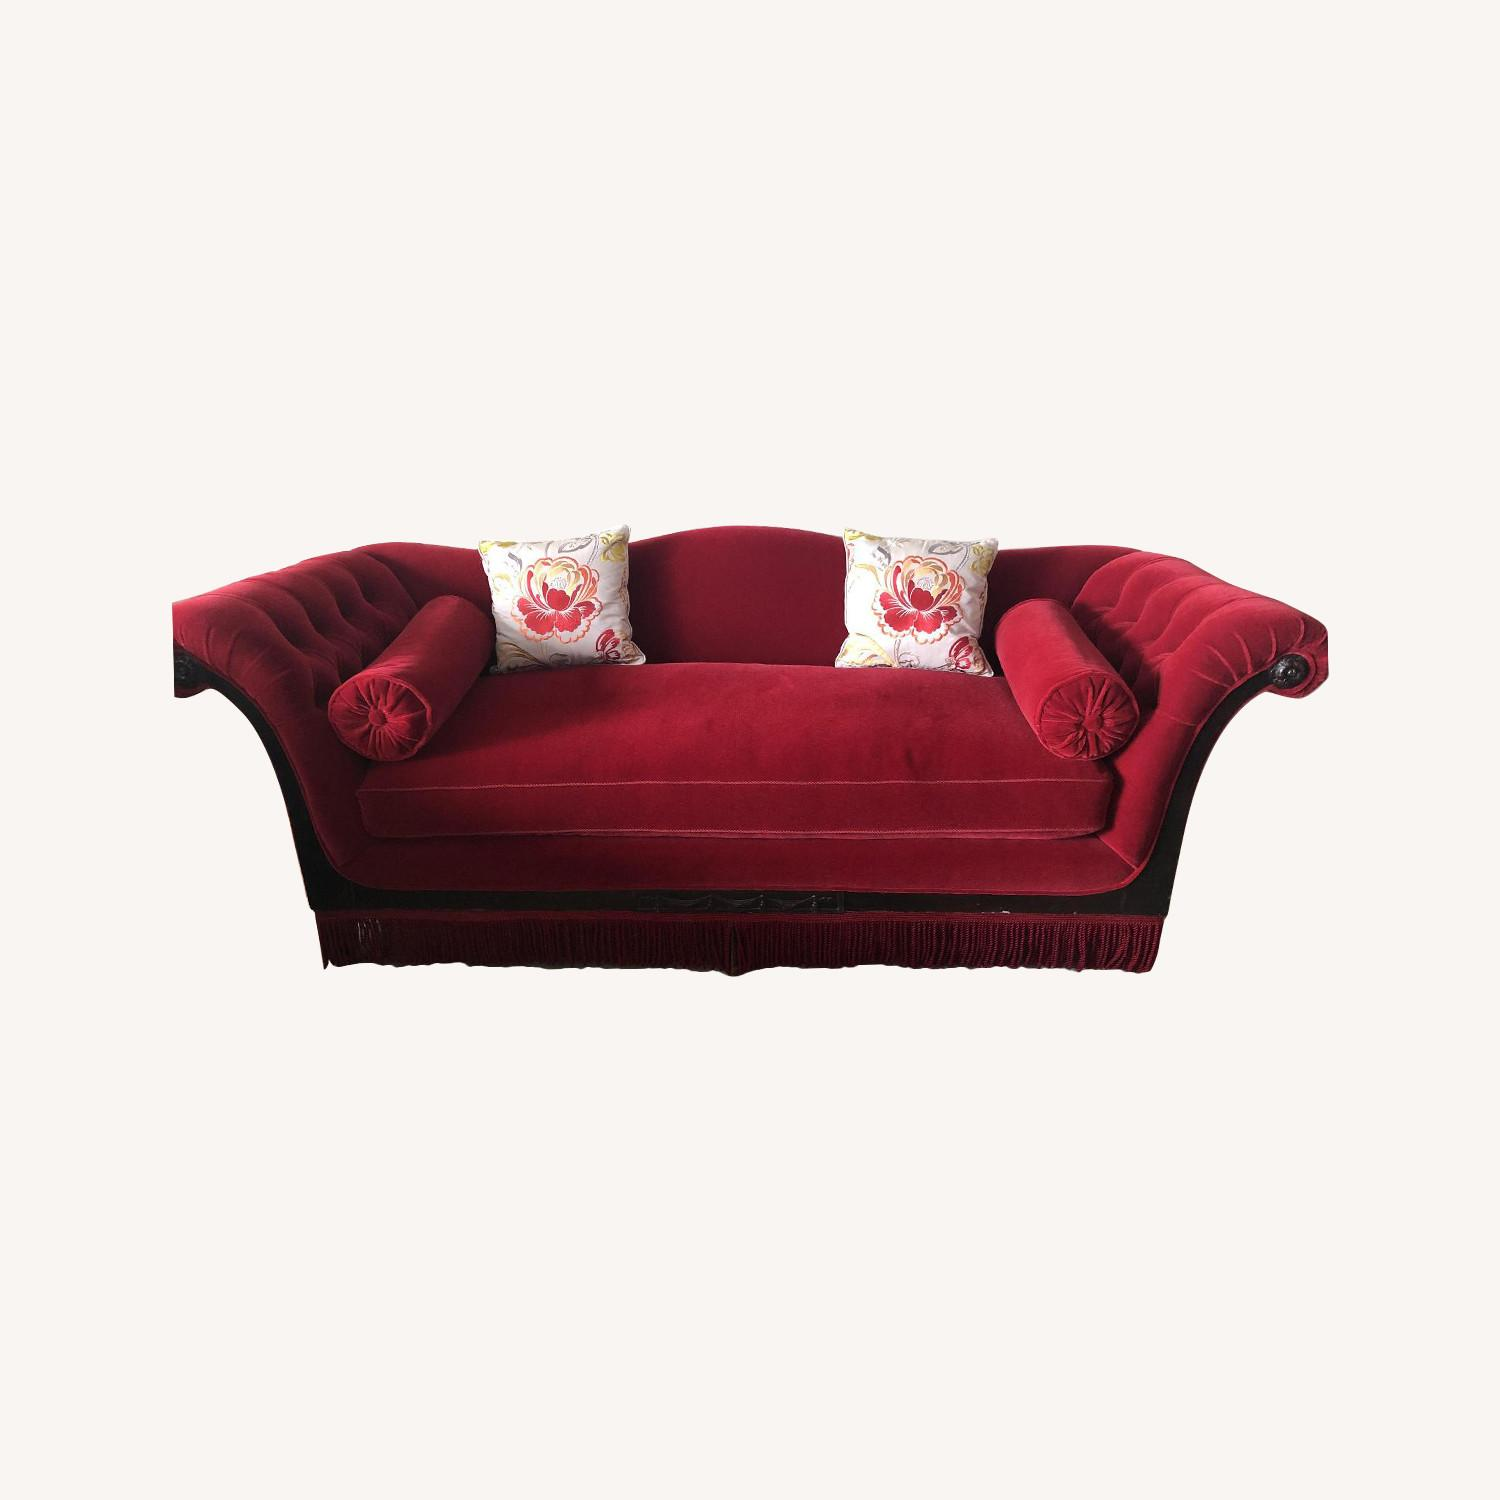 Vintage Cherry Red Mohair Sofa w/ Bolsters + Armchair - image-0